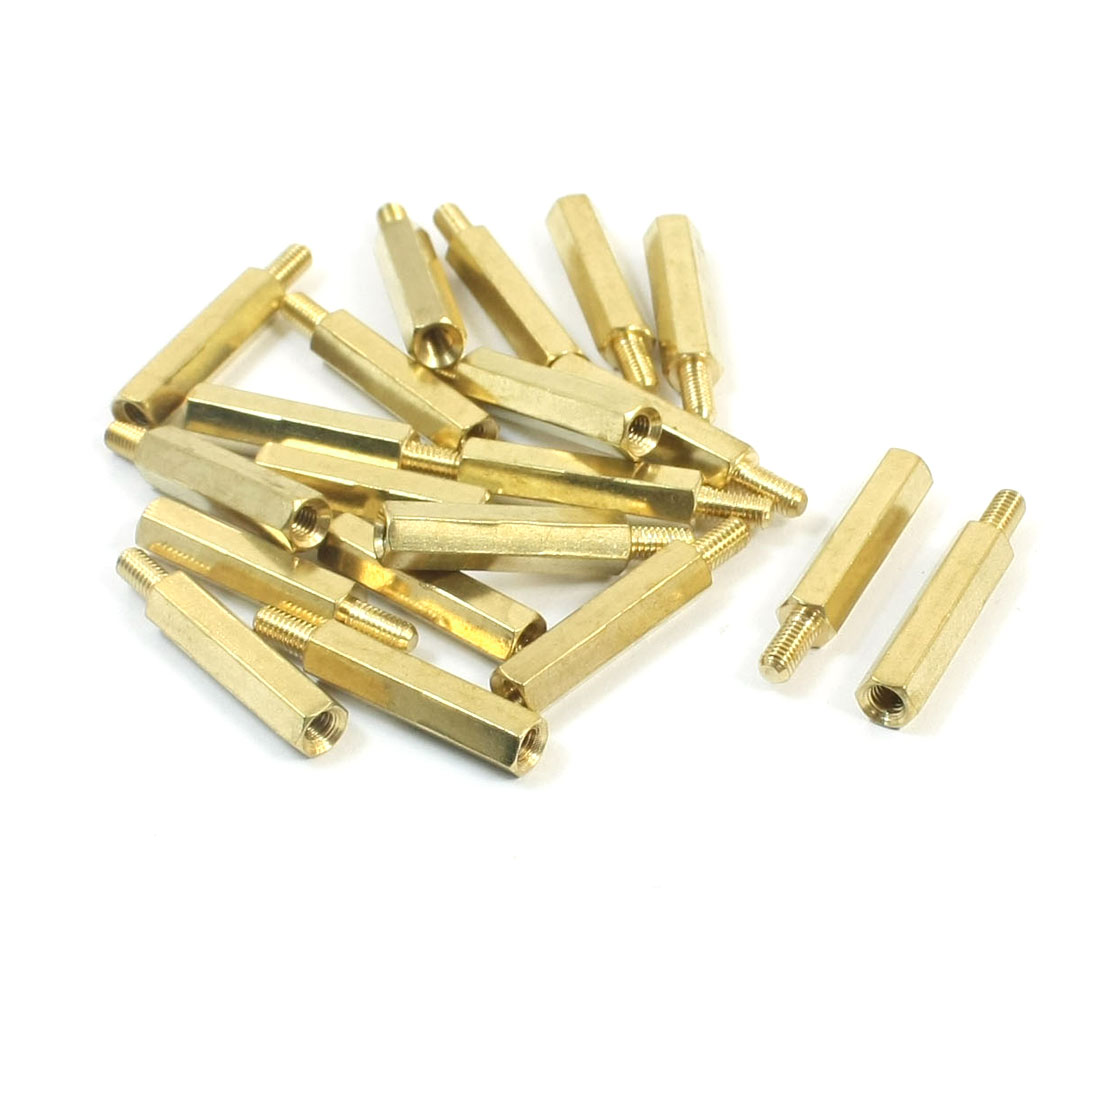 M3 x 20mm x 26mm Male Female Threaded Gold Tone Brass Pillar PCB Hexagon Nut Standoff Spacer 20Pcs